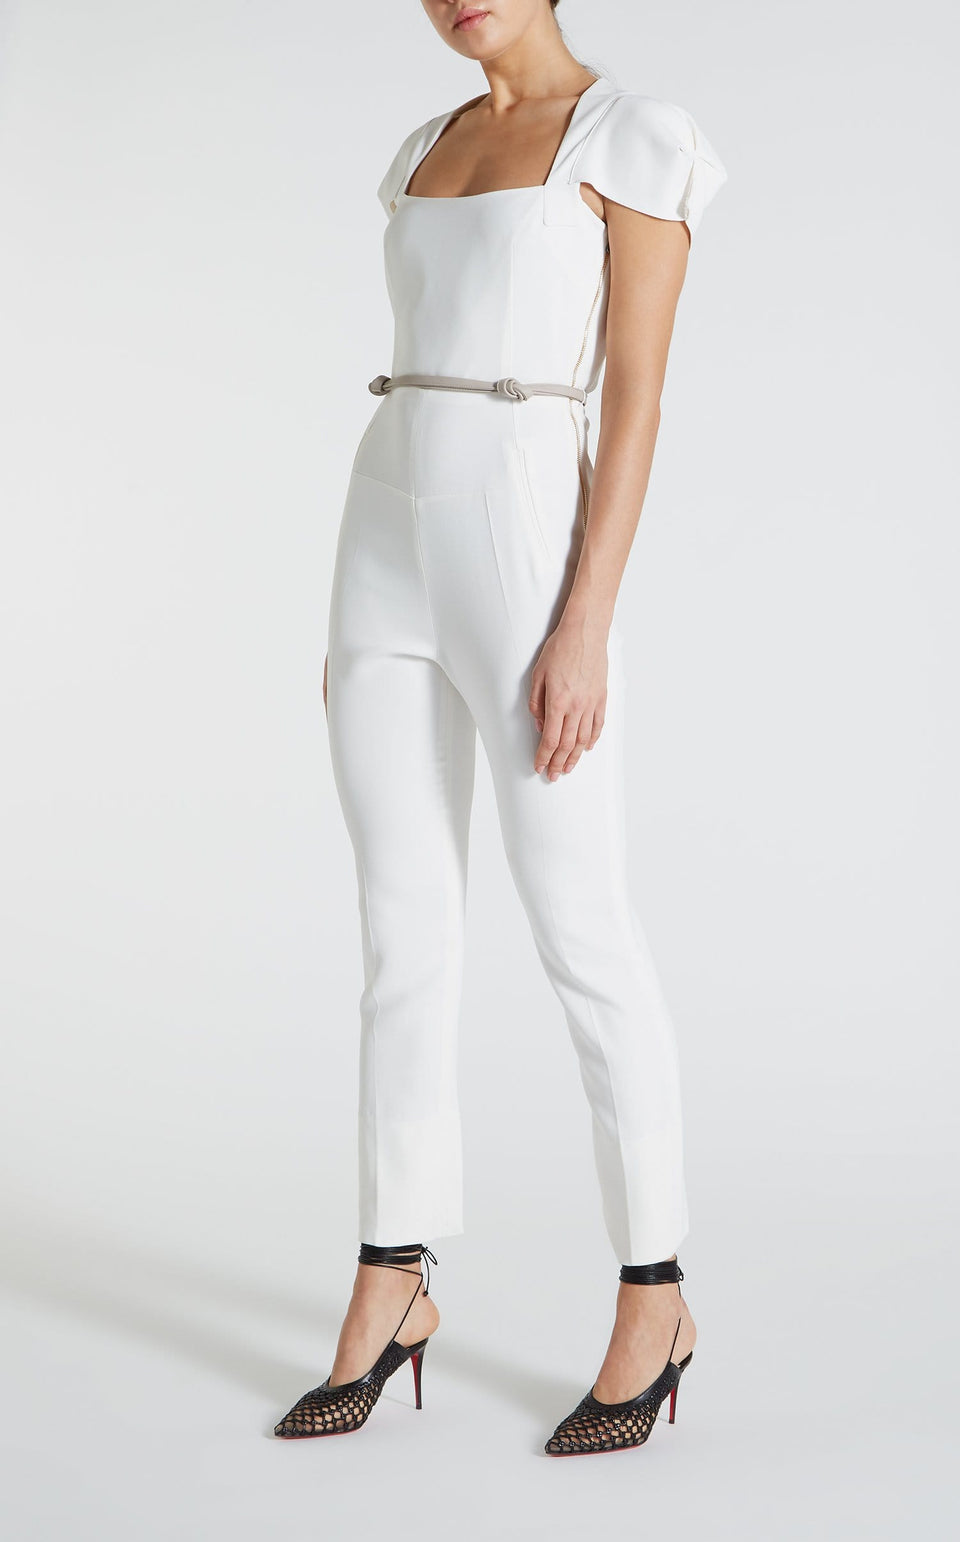 Galaxy Jumpsuit In White from Roland Mouret